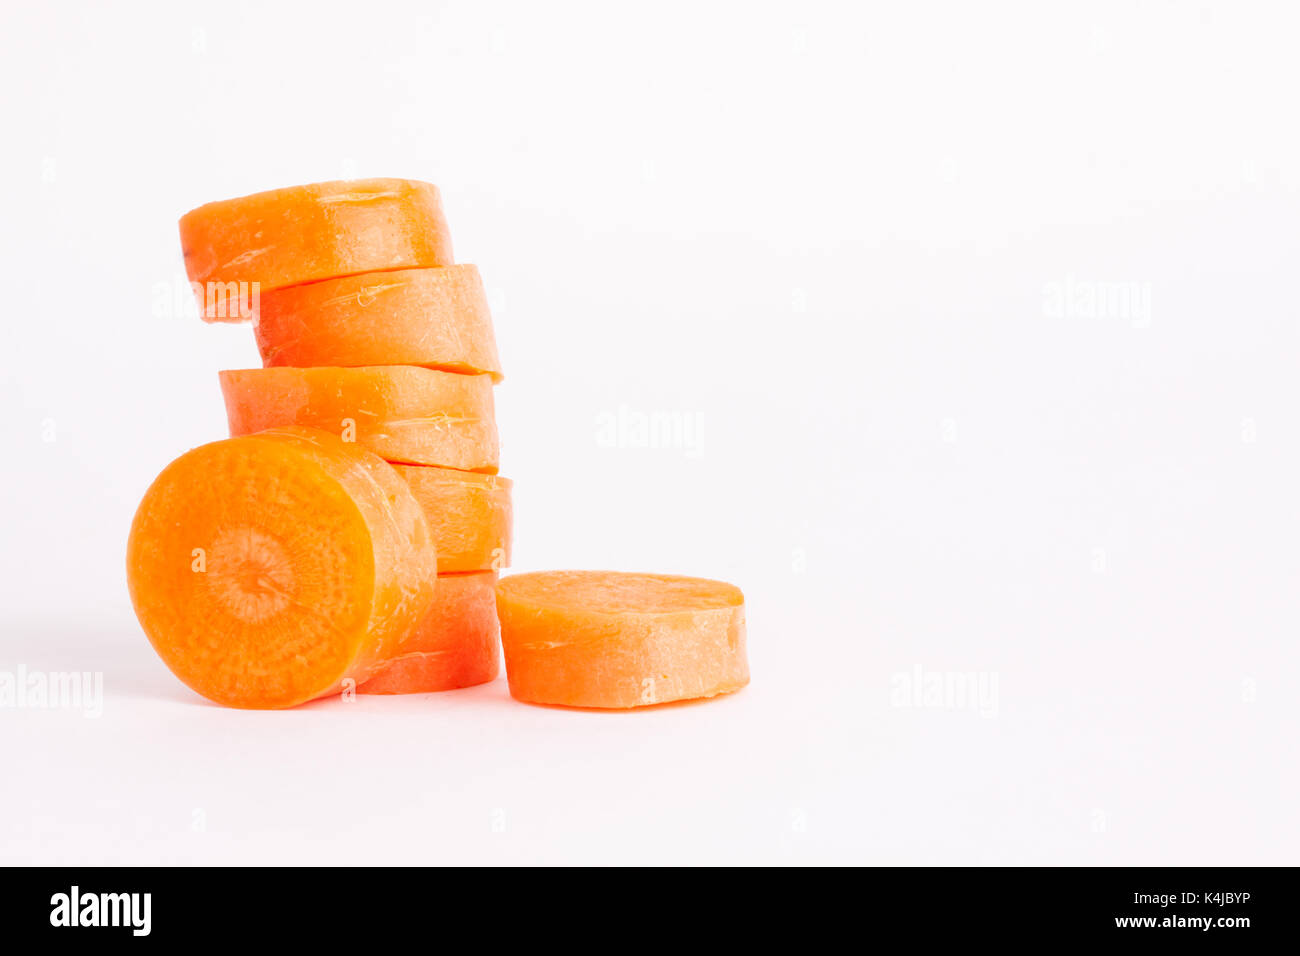 carrot slices - Stock Image